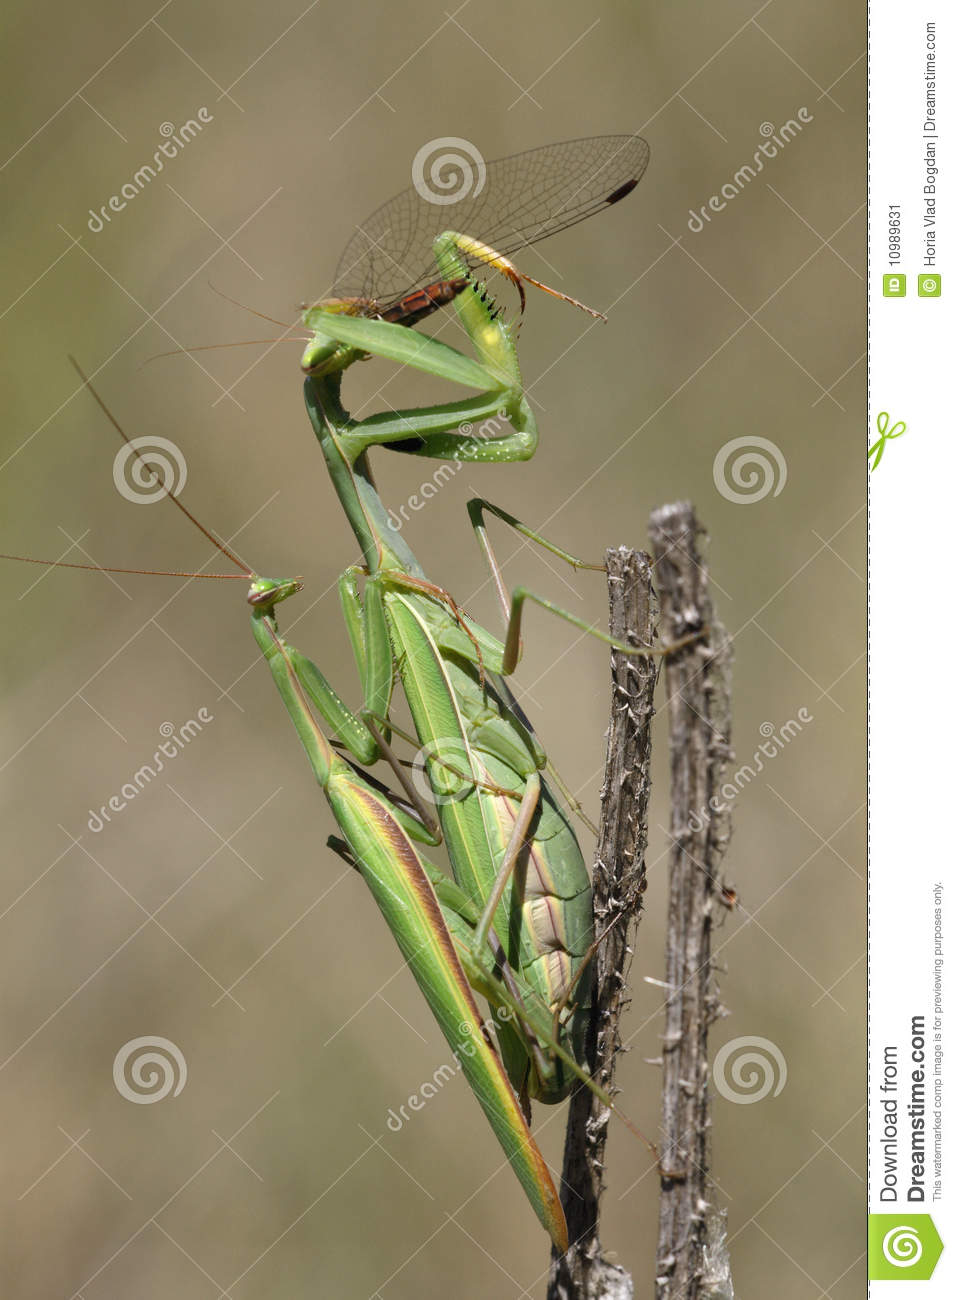 Praying mantis eating and mating